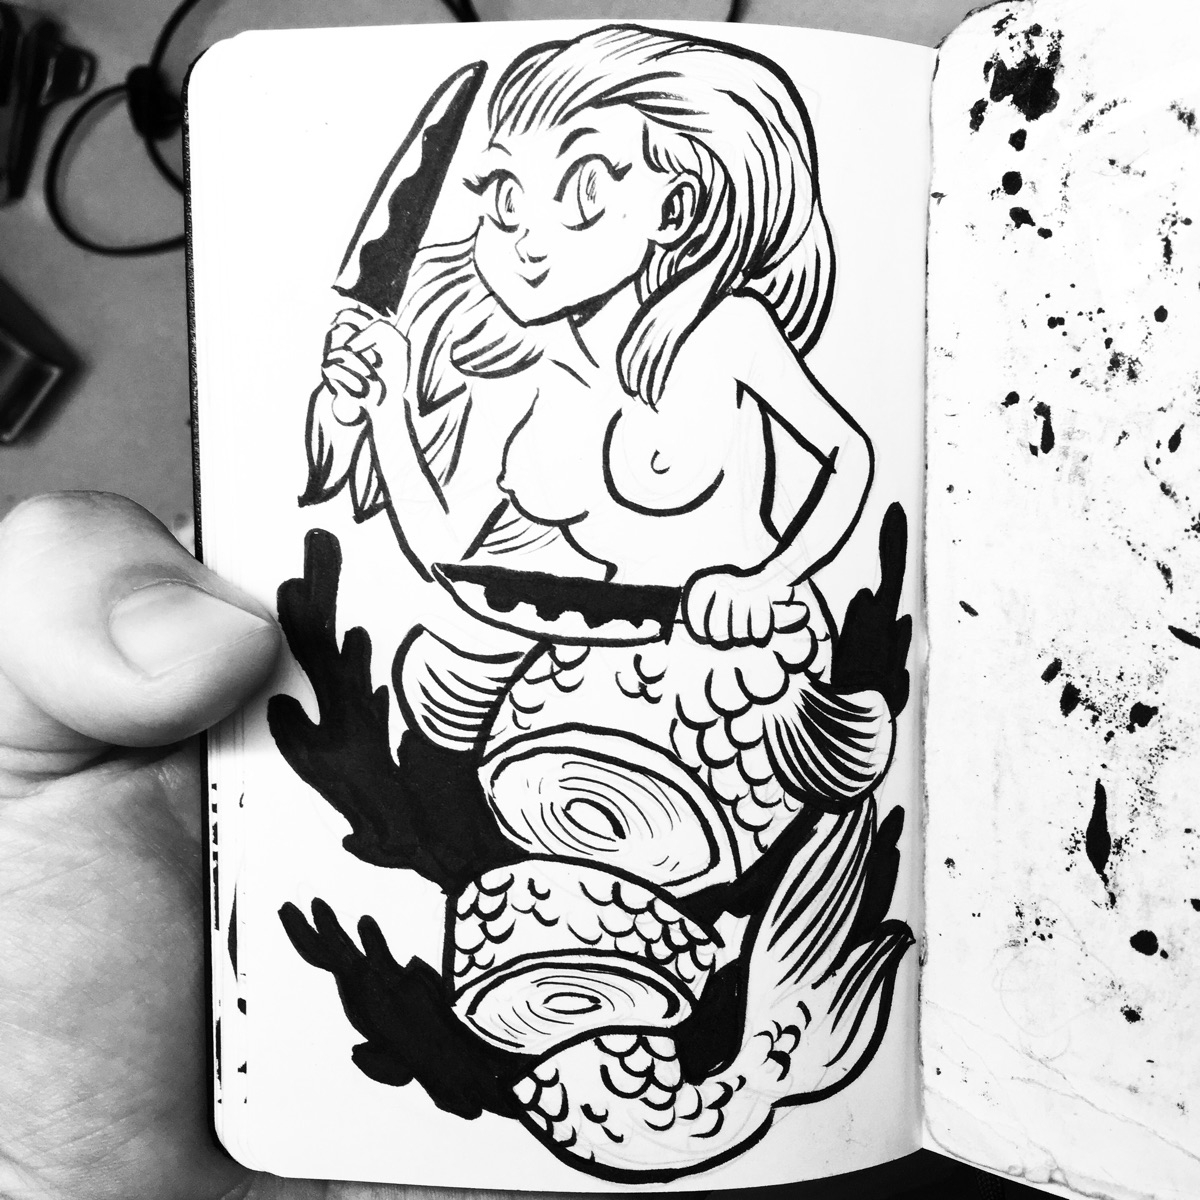 inflicted sashimi - mermay, mermaid - royallyeric | ello